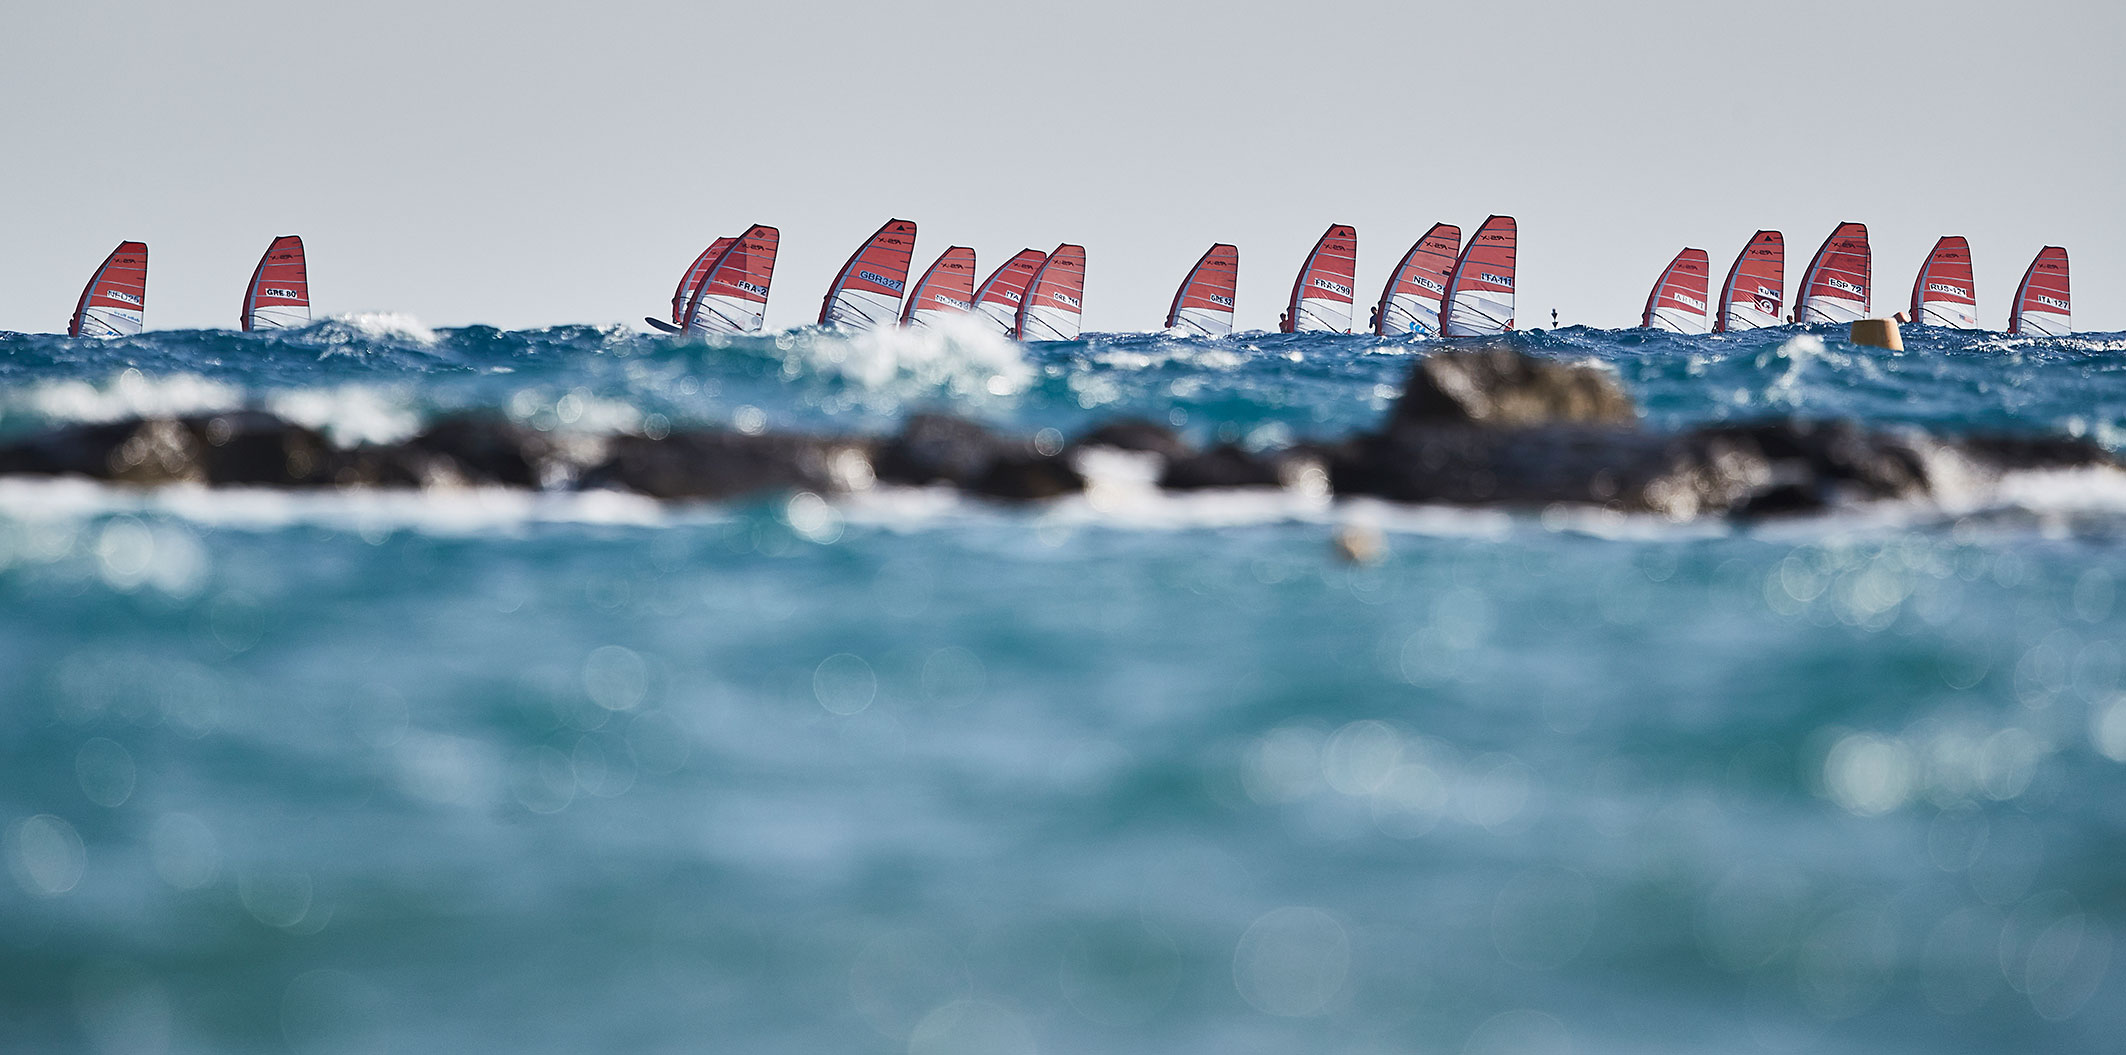 2016_11_20_rsx_youth_worlds_d2_before_the_races_001_rh